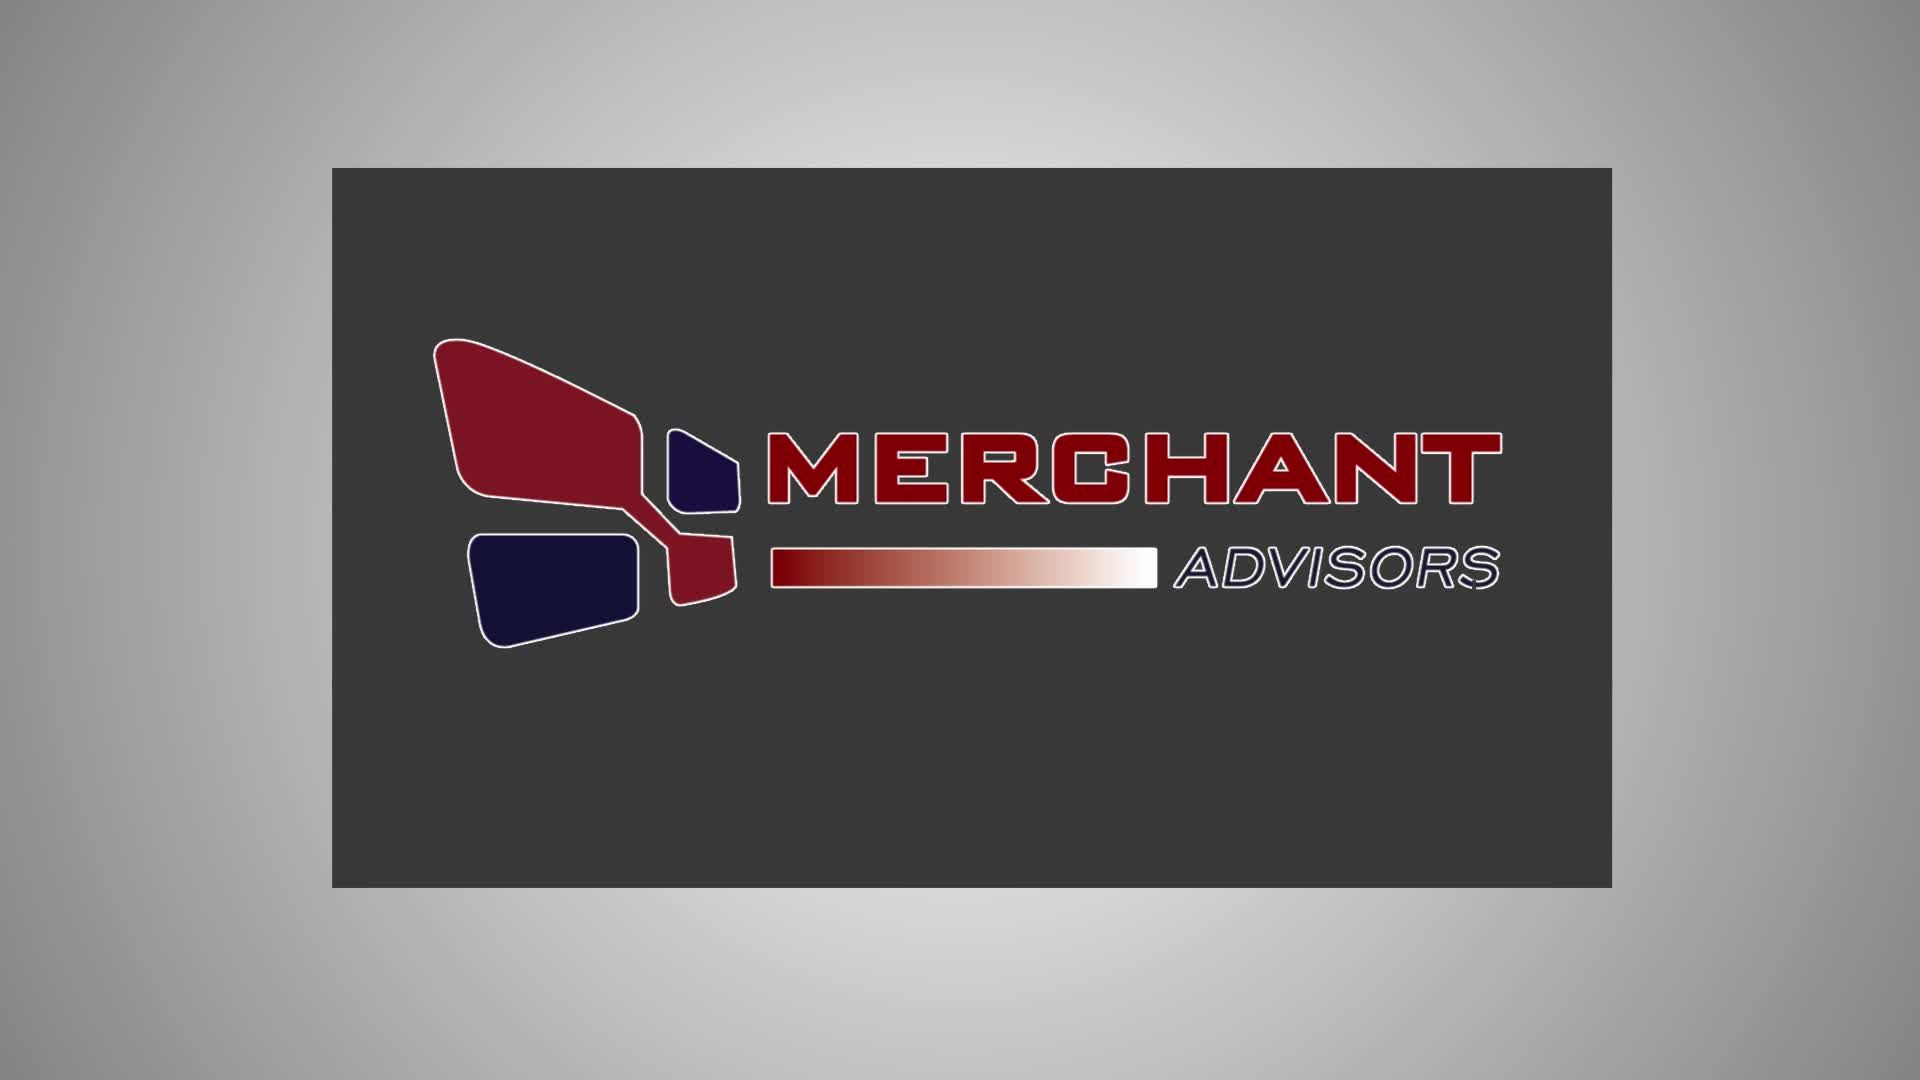 Merchant advisors offers a full suite of financing options including merchant advisors offers a full suite of financing options including small business loans bad credit reheart Image collections